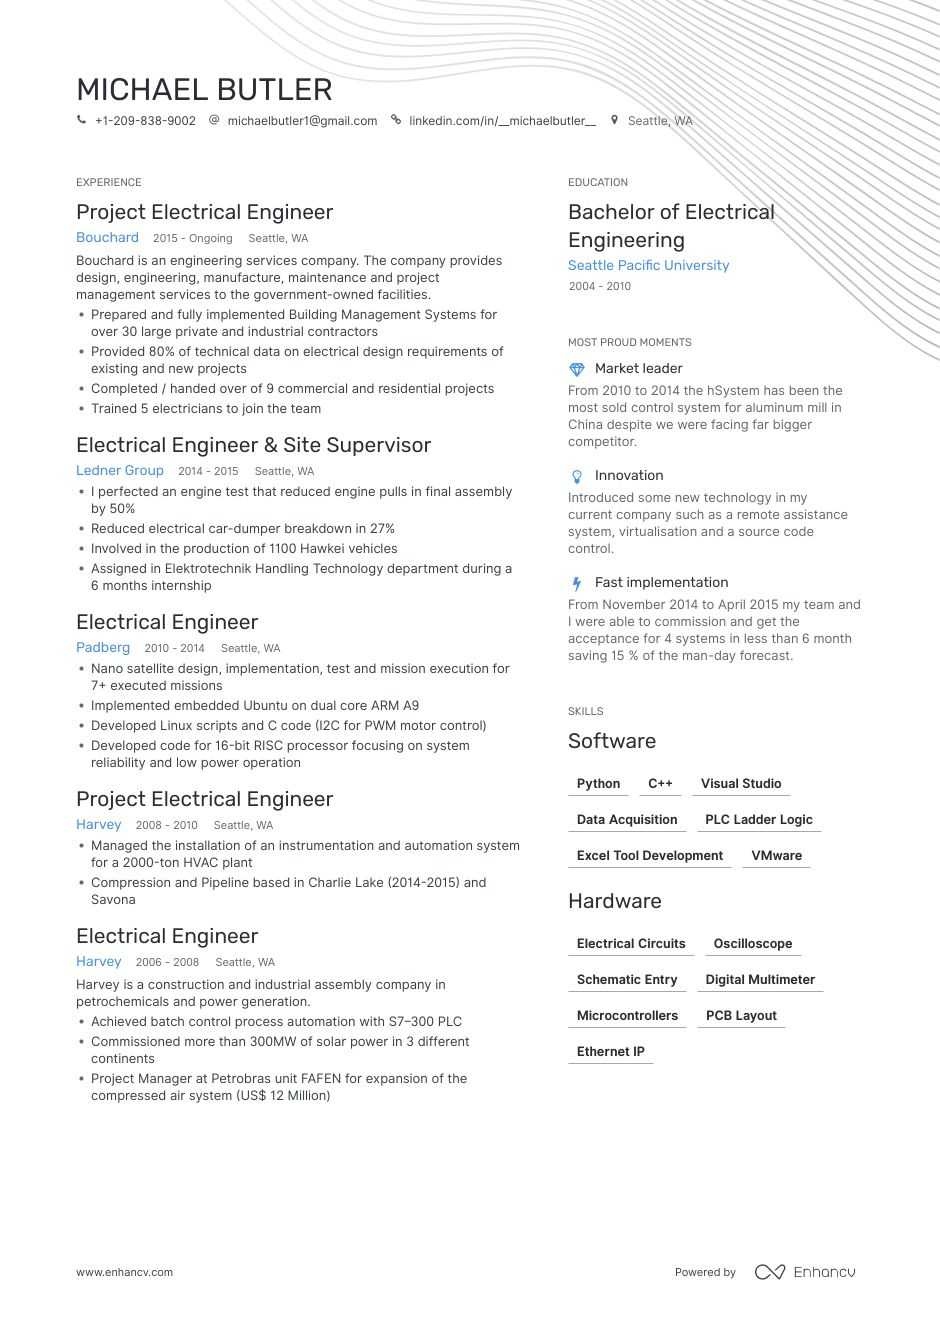 electrical engineer resume examples pro tips featured enhancv samples for electronics and Resume Resume Samples For Electronics And Communication Engineers